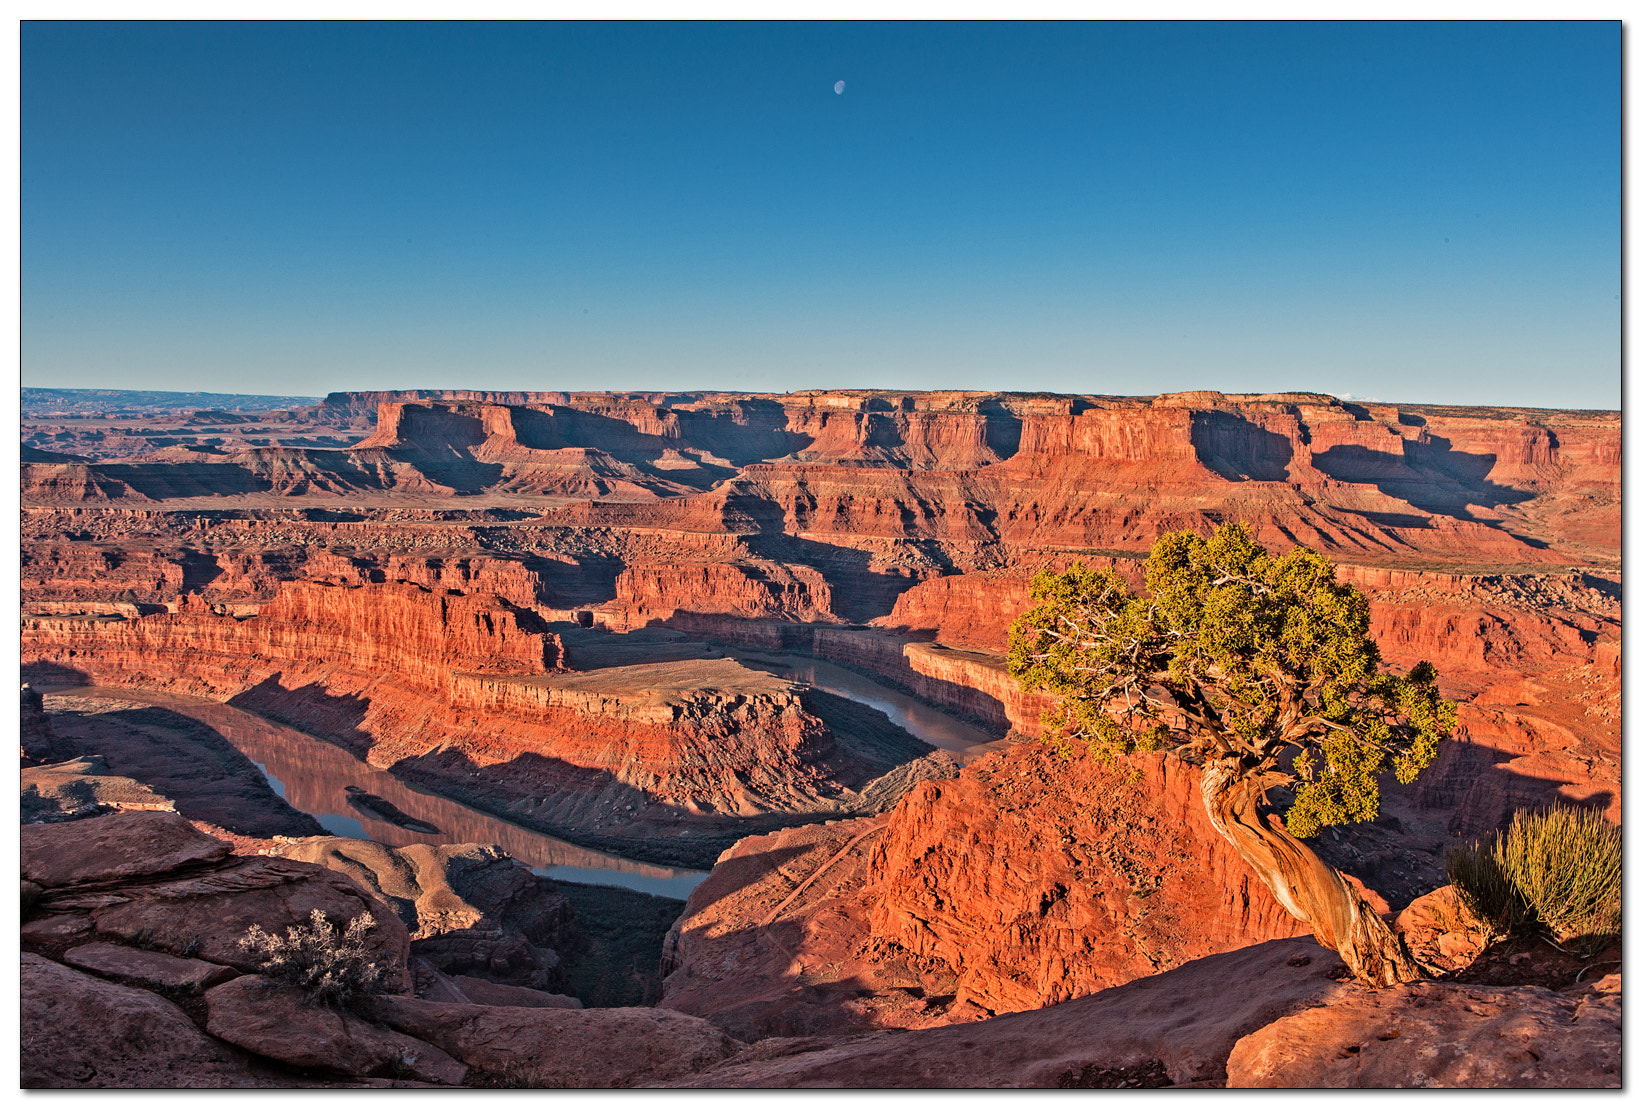 Photograph Deadhorse Point Sunrise by Jameel Hyder on 500px